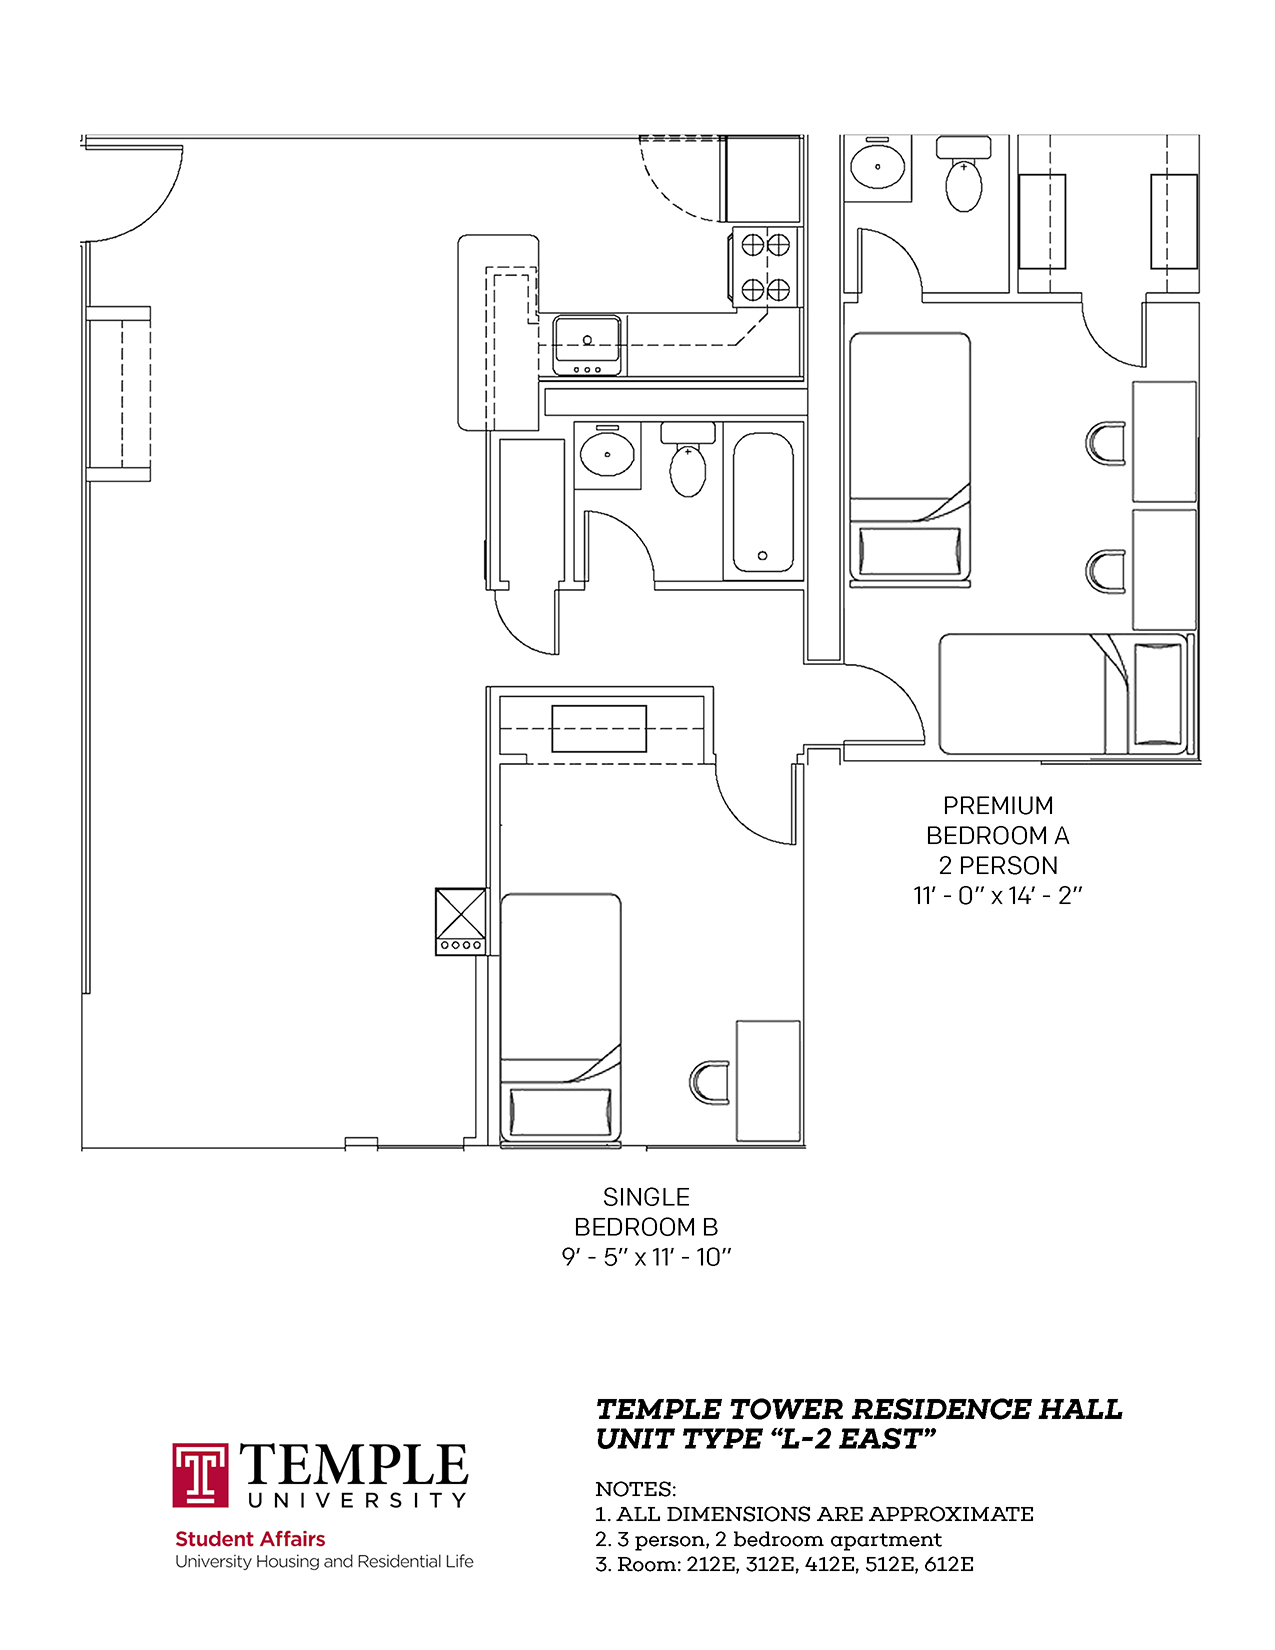 Temple Towers: Unit L2 East - 3 person, 2 bedroom Apartment